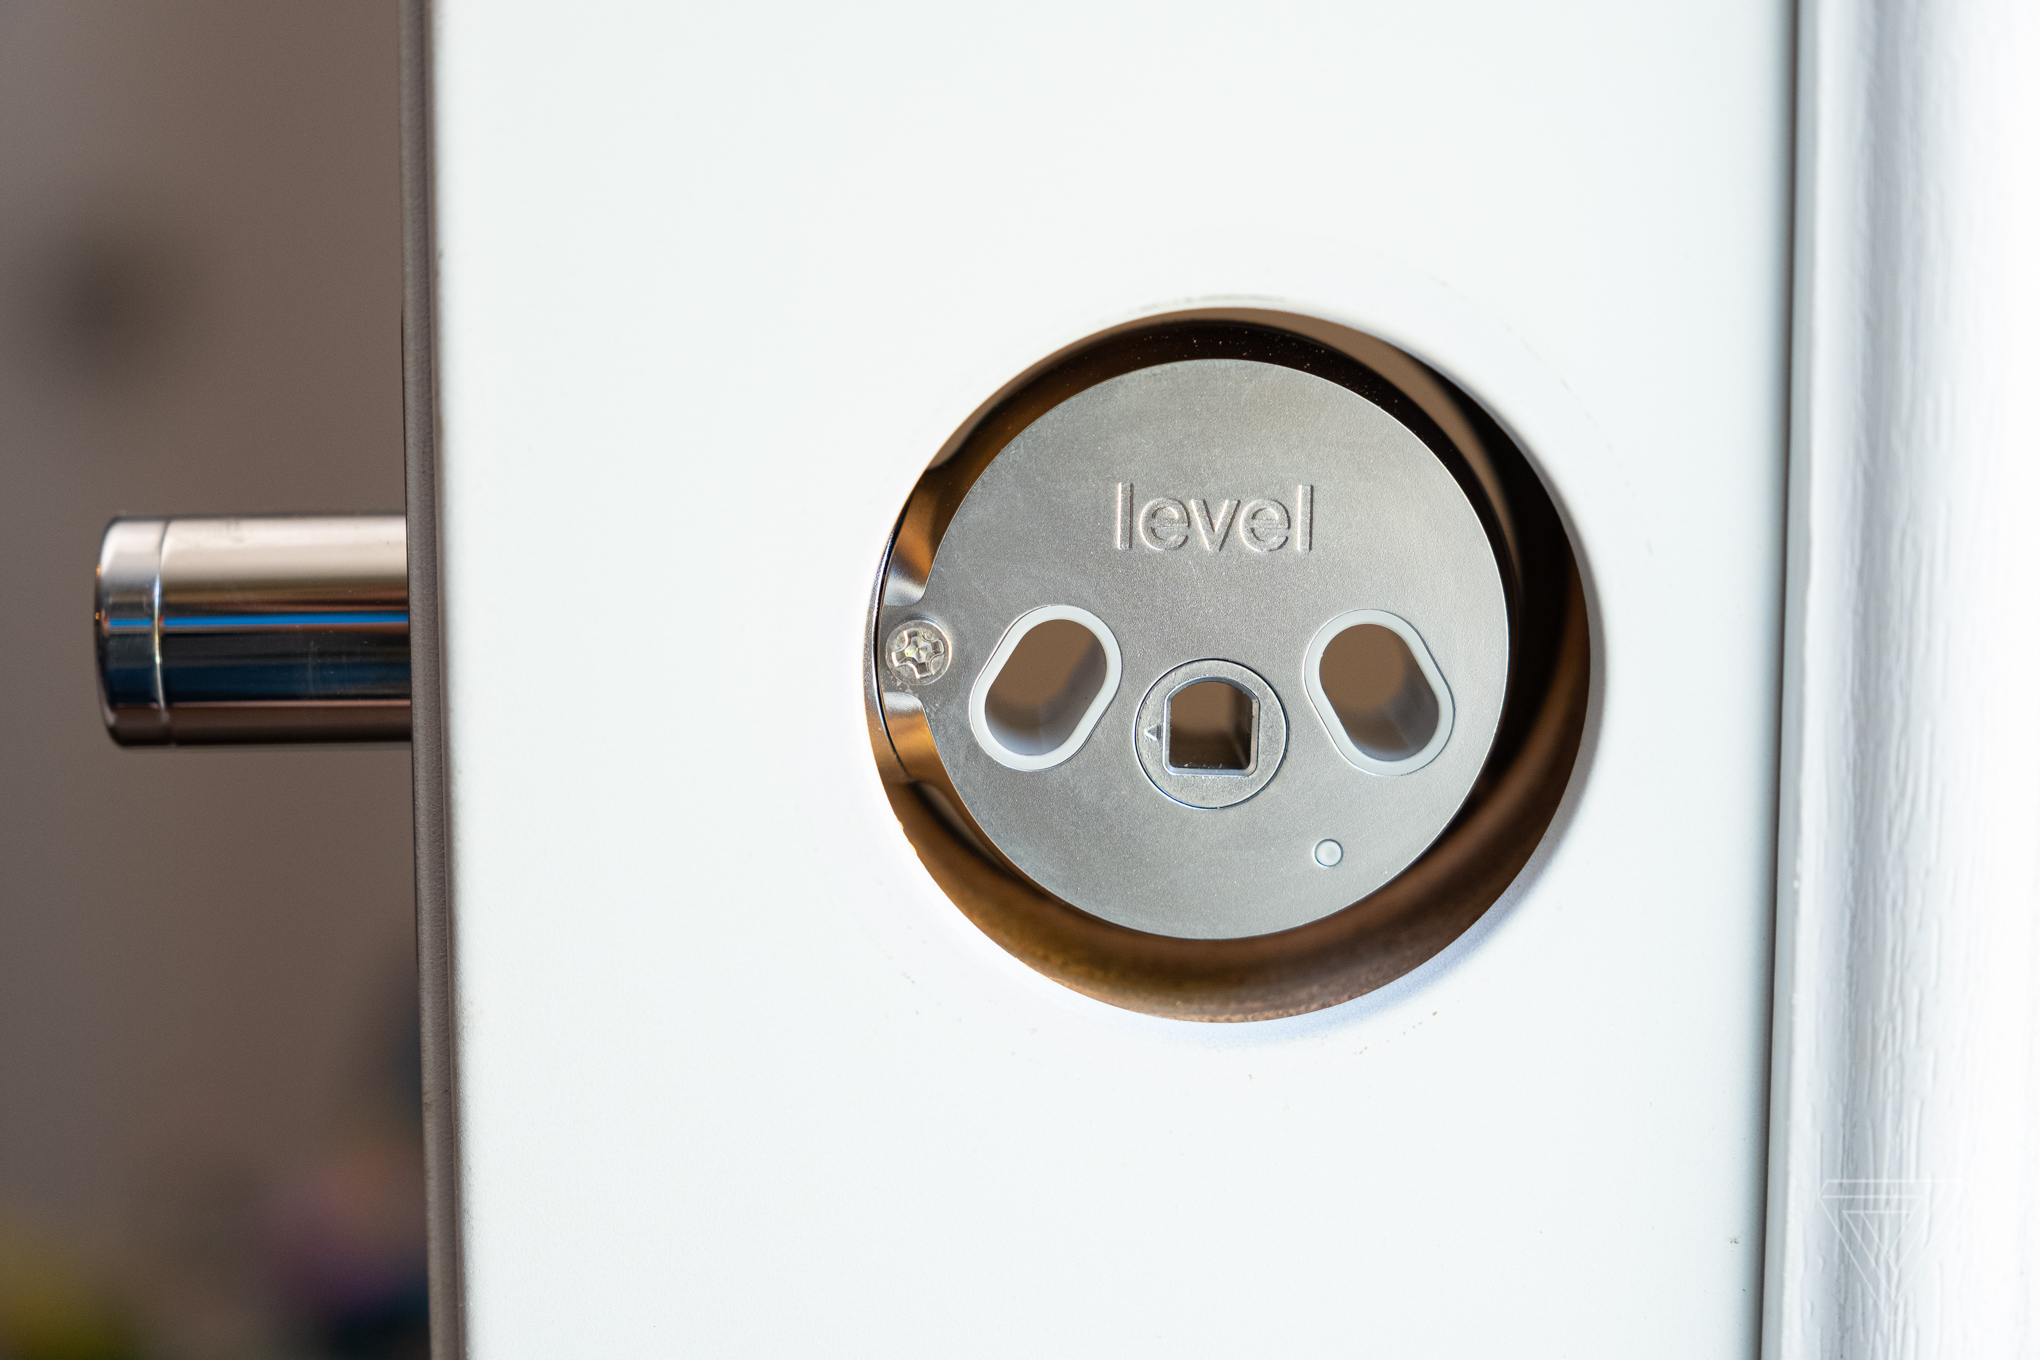 The Level Lock smart lock in a door frame